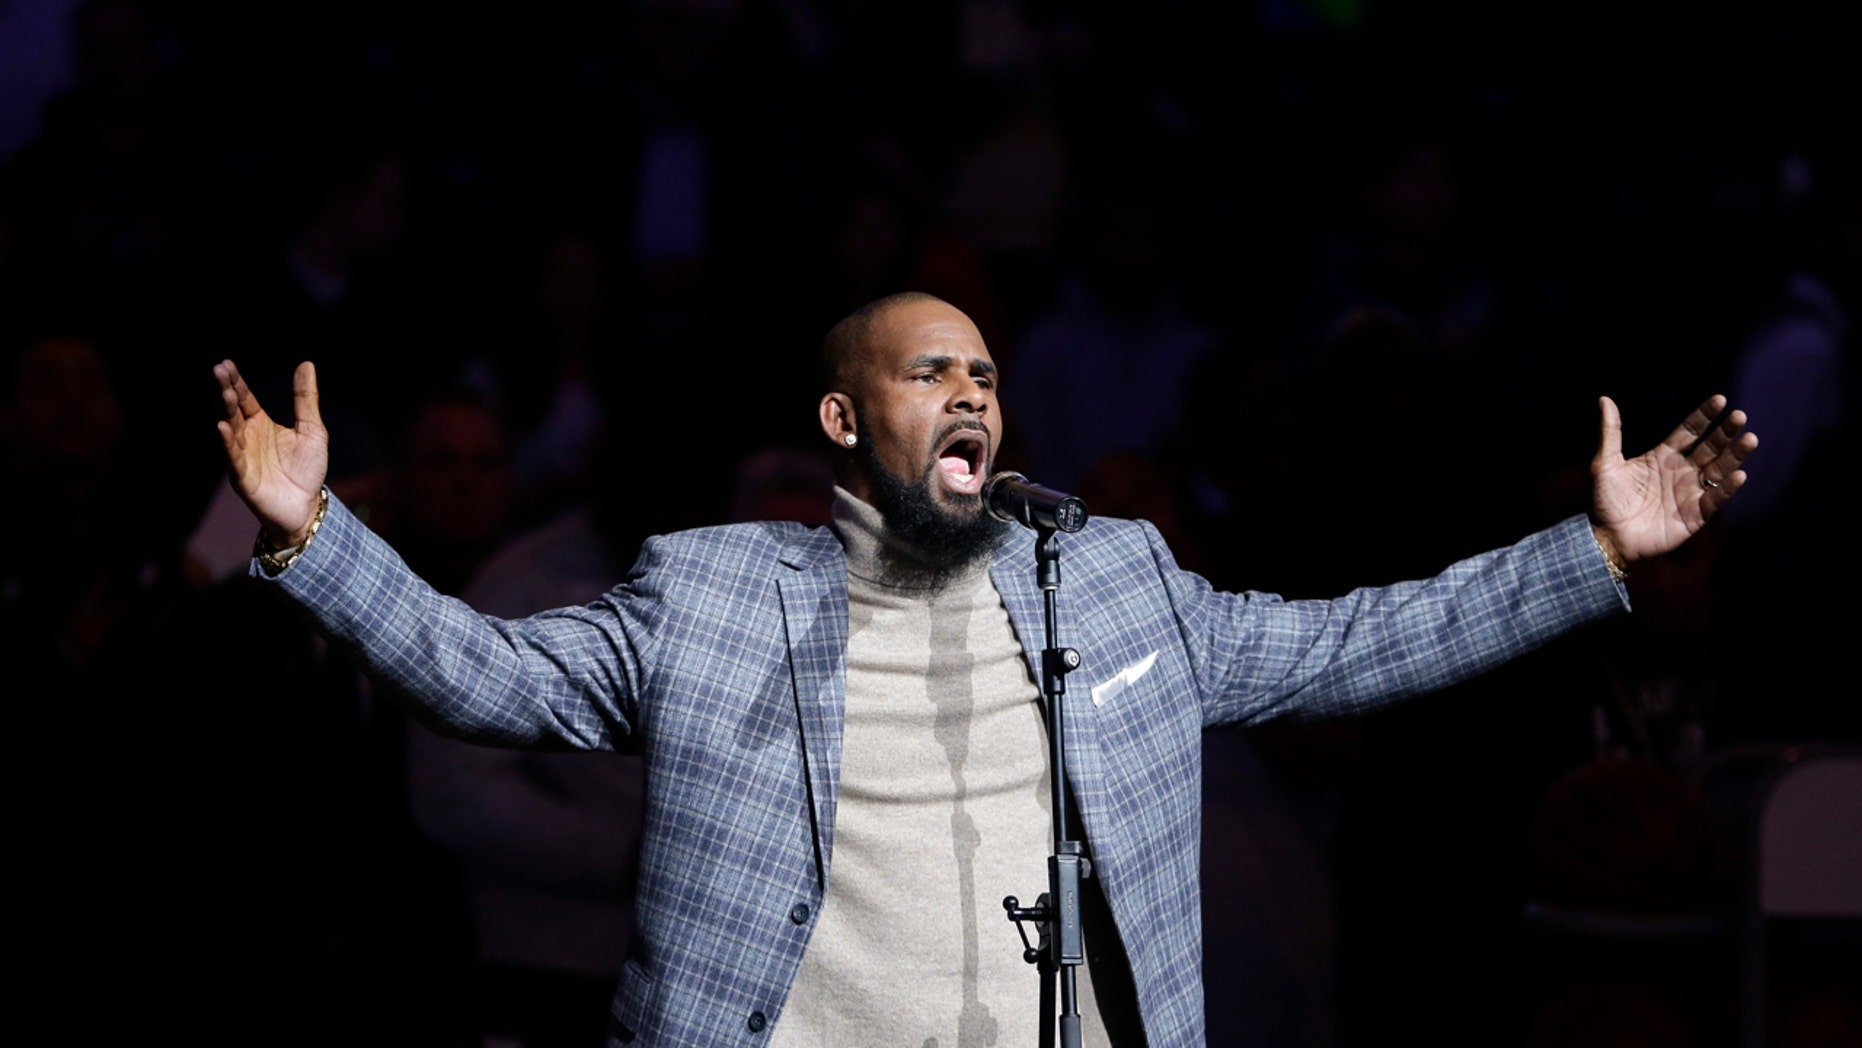 FILE - In this Nov. 17, 2015 file photo,  R. Kelly performs the national anthem before an NBA basketball game between the Brooklyn Nets and the Atlanta Hawks in New York. Court documents show the R&B singer  has been evicted from two Atlanta-area homes over unpaid rent.  The Feb. 13, 2018 filings with the Fulton County magistrate court show Kelly owes more than $31,000 in past due payments to SB Property Management Global.  (AP Photo/Frank Franklin II, File)